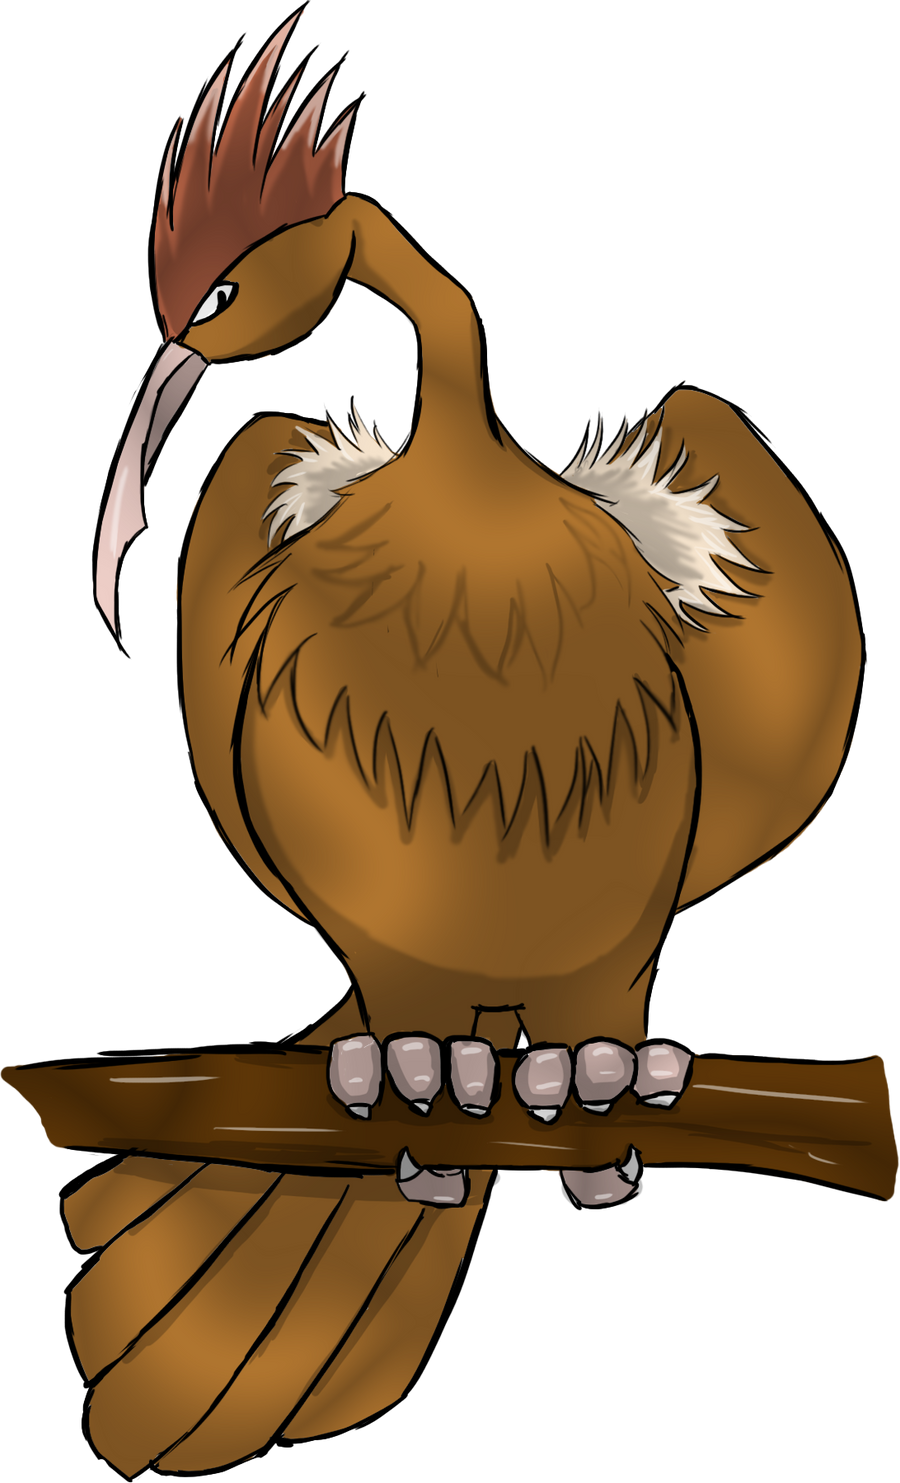 Fearow Pokemon Wallpaper Images | Pokemon Images